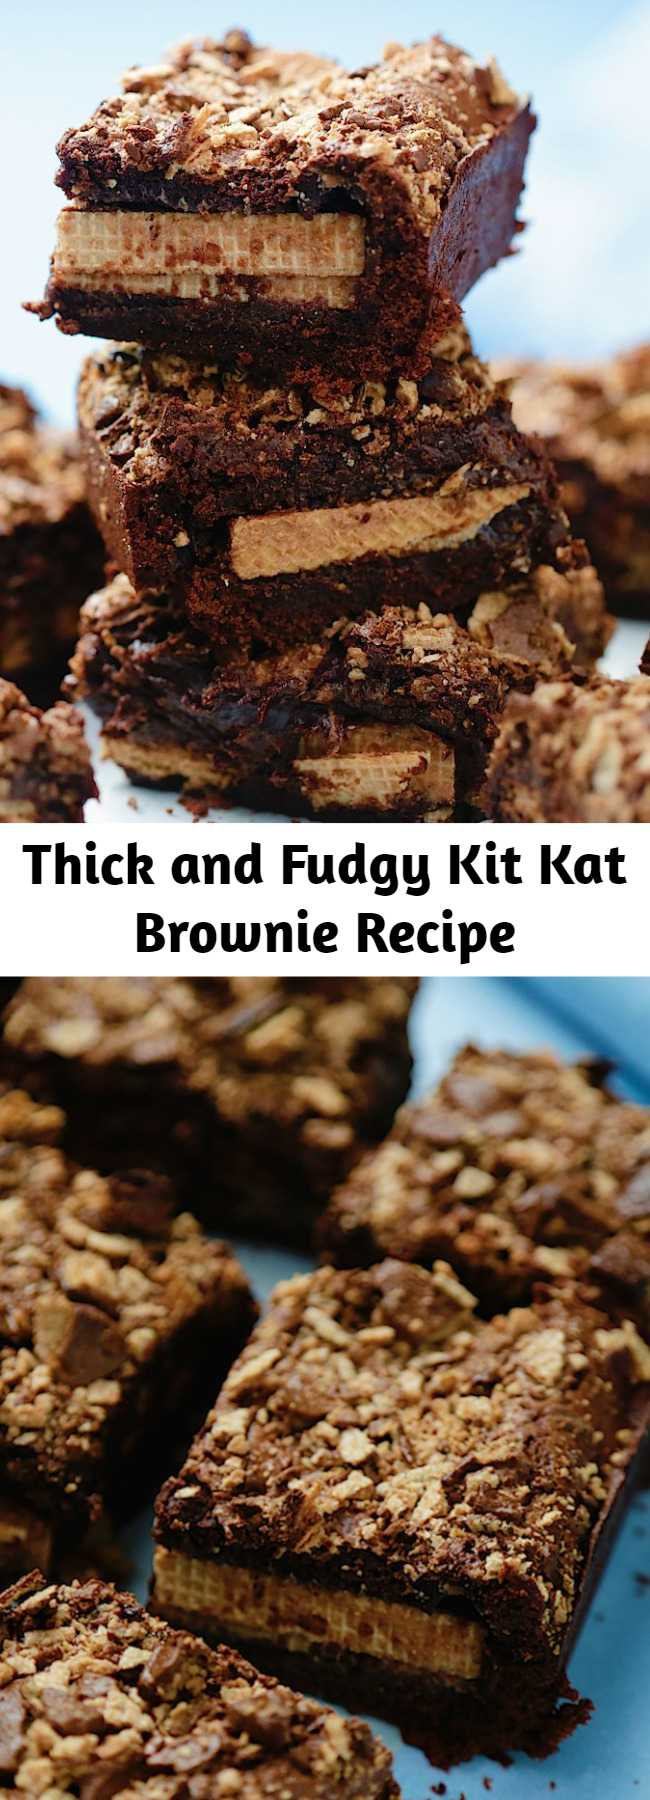 Thick and Fudgy Kit Kat Brownie Recipe - Deliciously thick and fudgy chocolate brownies that are stuffed with whole KitKats, and generously topped with broken KitKats! We added some Kit Kats and took brownies to a whole new level. #kitkat #kitkatcake #brownie #brownierecipe #baking #cooking #chocolate #chocolatedessert